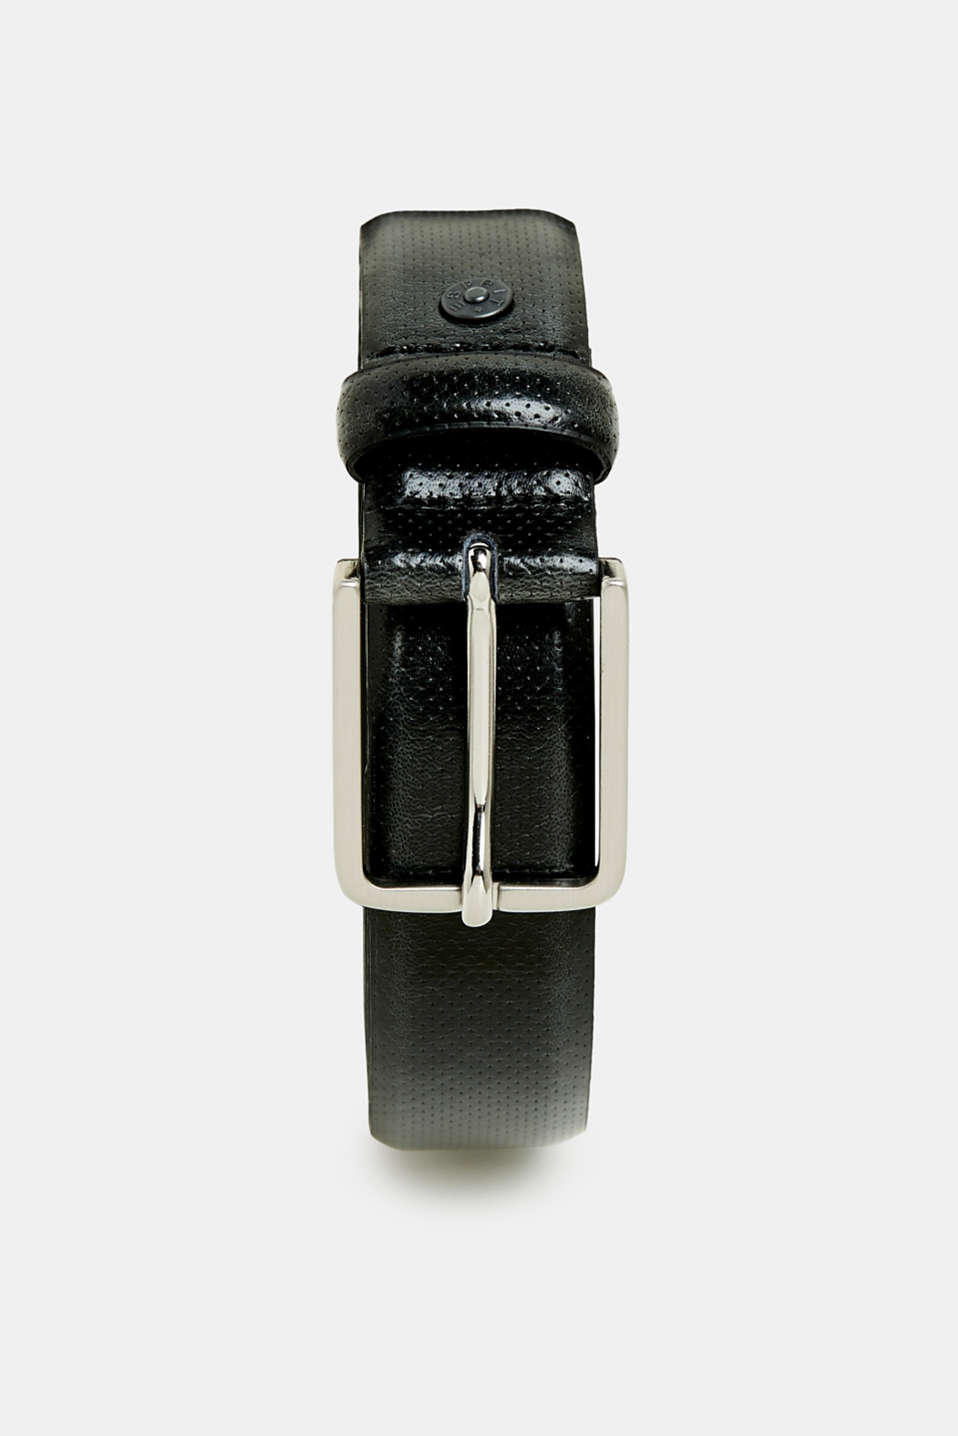 Esprit - Business belt with perforations, made of leather